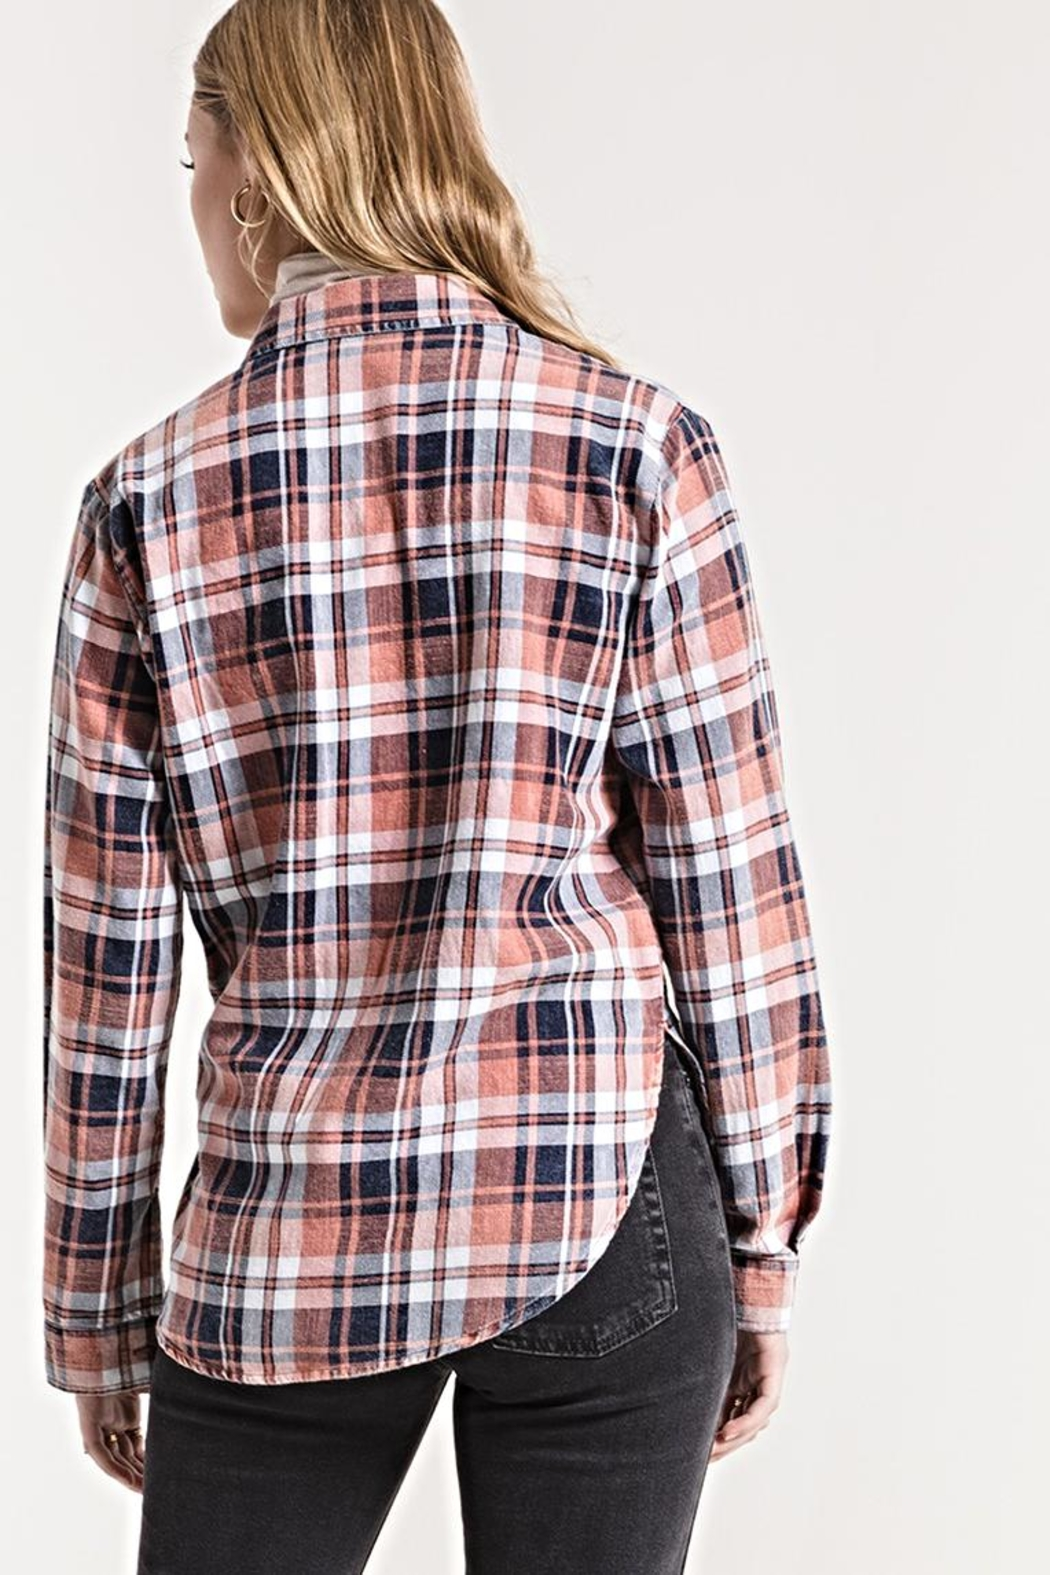 White Crow Plaid Button-Up Top - Side Cropped Image